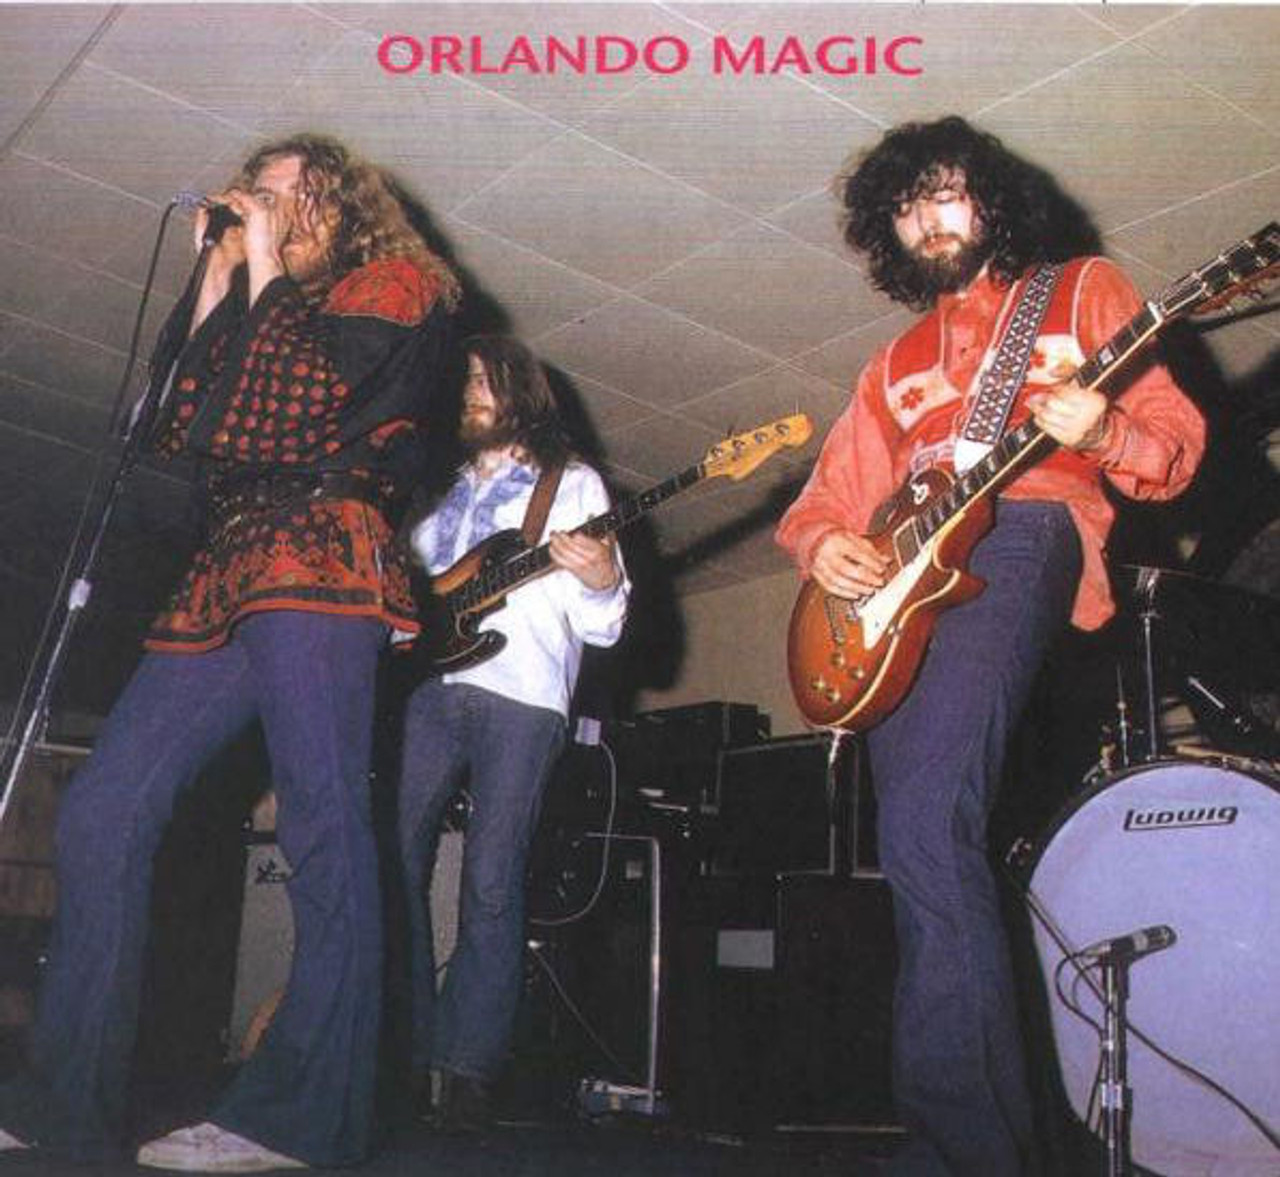 Led Zeppelin ‎– Florida Sunshine  Orlando Magic 2 CD